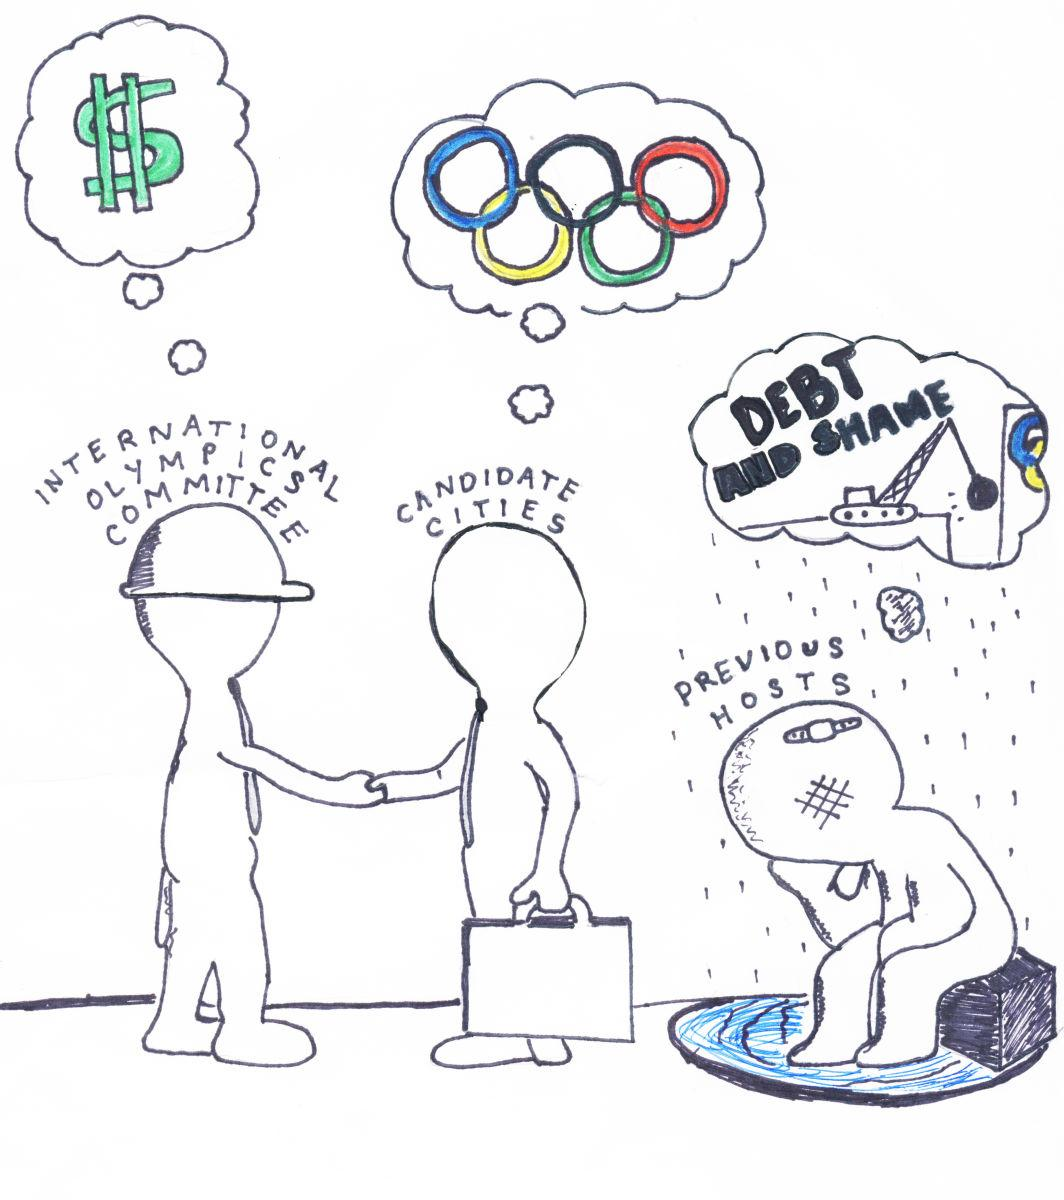 Though it may appear that hosting the Olympics will bring as much wealth as it does publicity, the reality is that, in most cases, it results in a bottomless spiral of government spending.